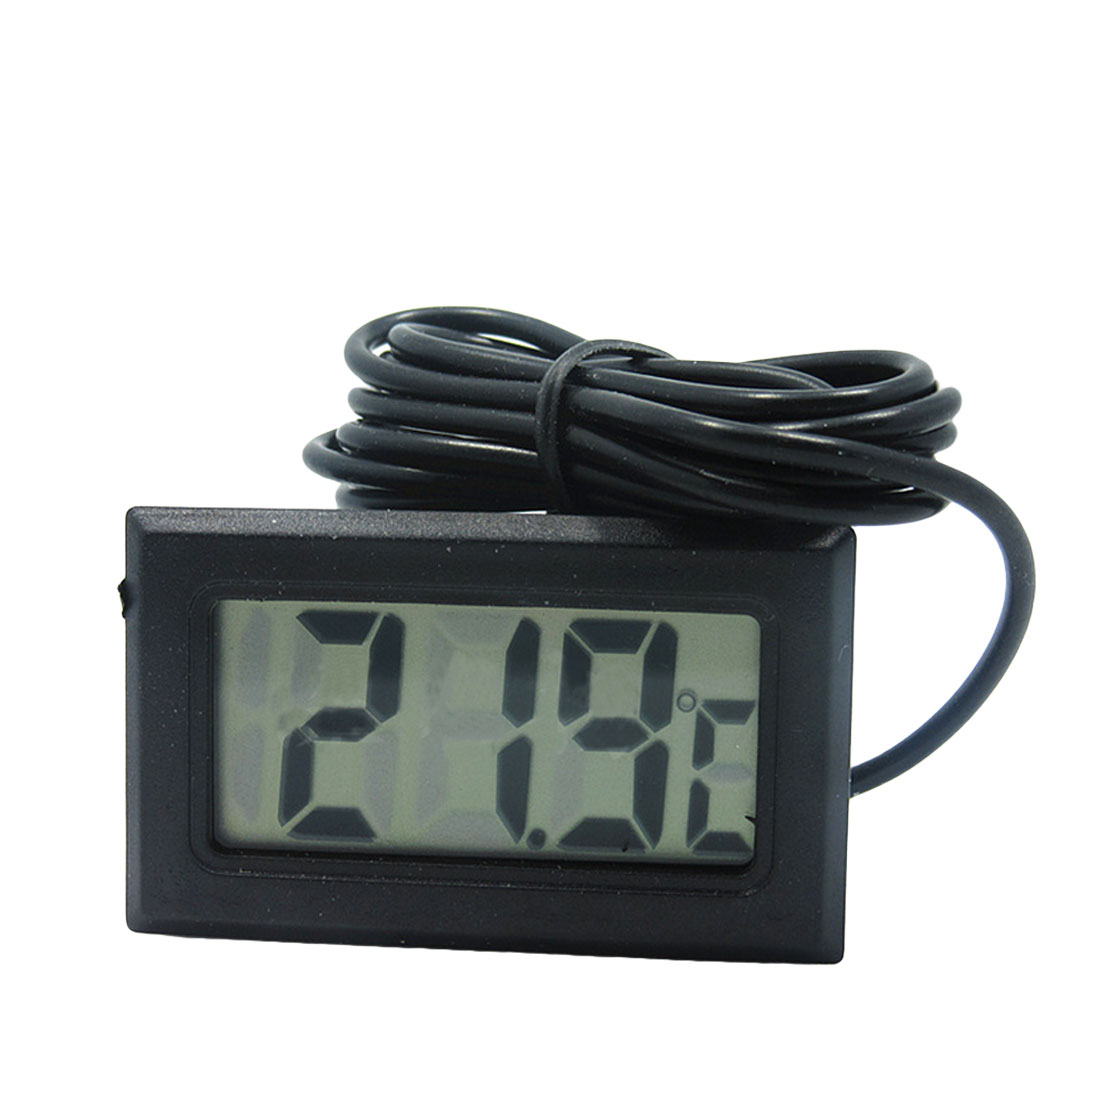 Free shipping Fish Aquarium Water Fridge 1m Probe Digital LCD Thermometer Tank Thermometer Tester outdoor portable water temperature measurement lcd digital display thermometer waterproof probe for aquarium freezer